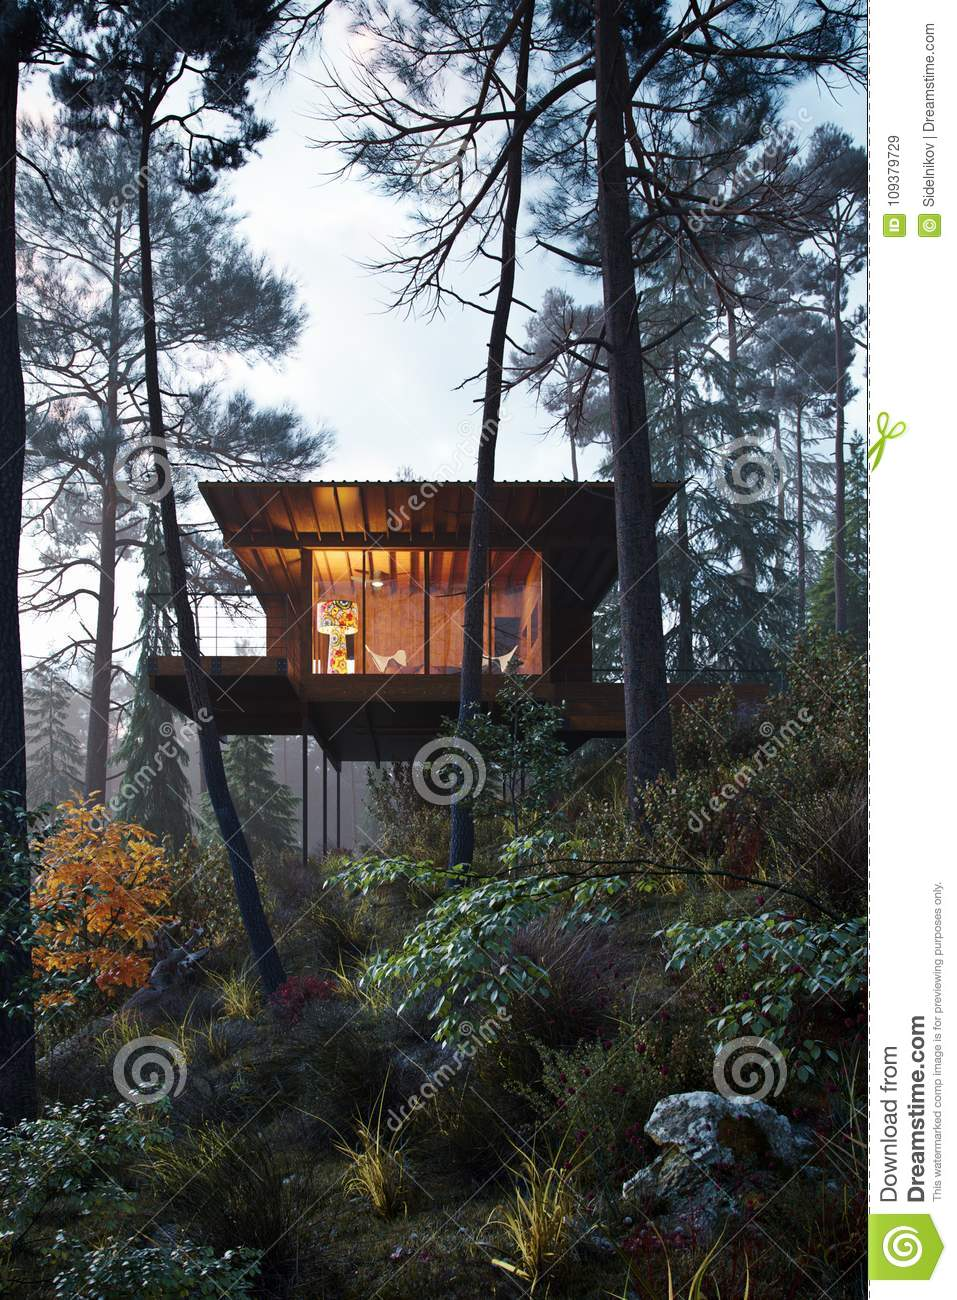 3d Rendering Wooden House Treehouse In Woods Twilight Stock Image Image Of Beams Property 109379729